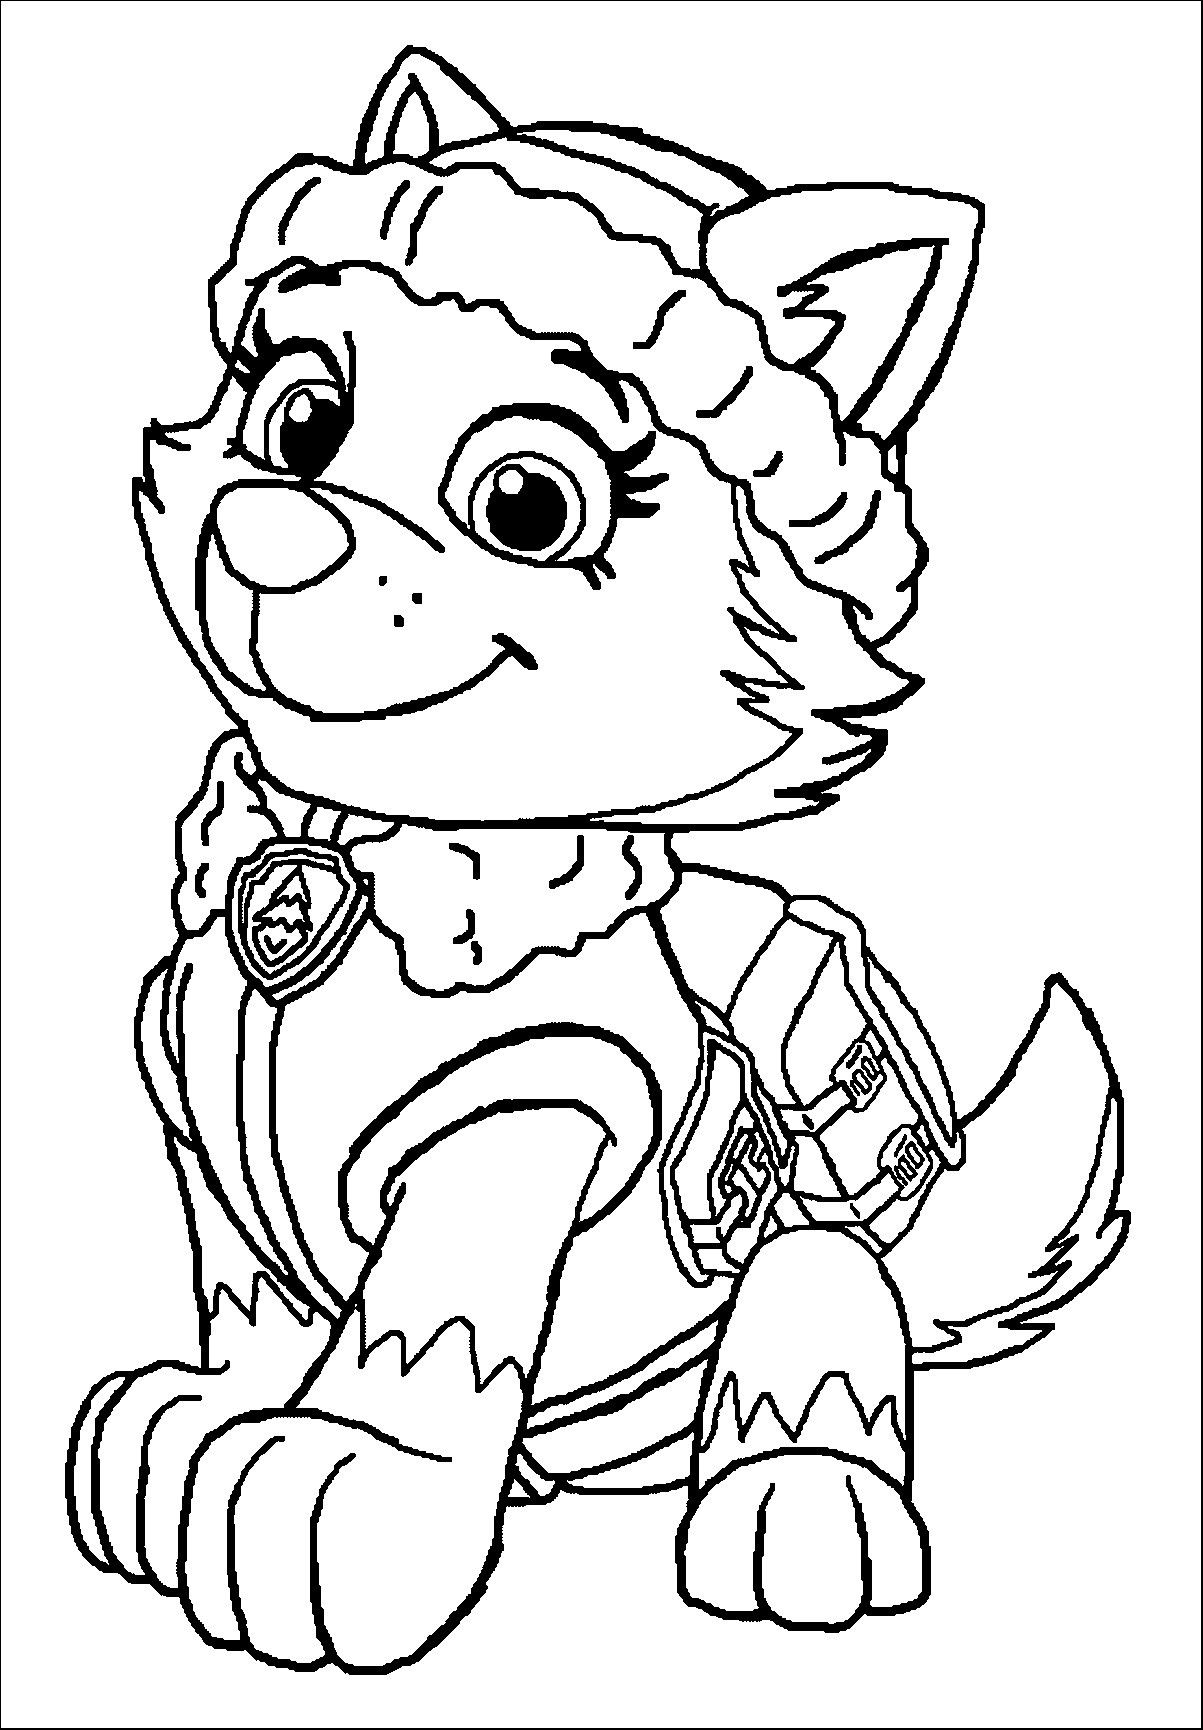 Paw Patrol Everest Coloring Page Youngandtae Com Paw Patrol Coloring Pages Paw Patrol Coloring Dog Coloring Page